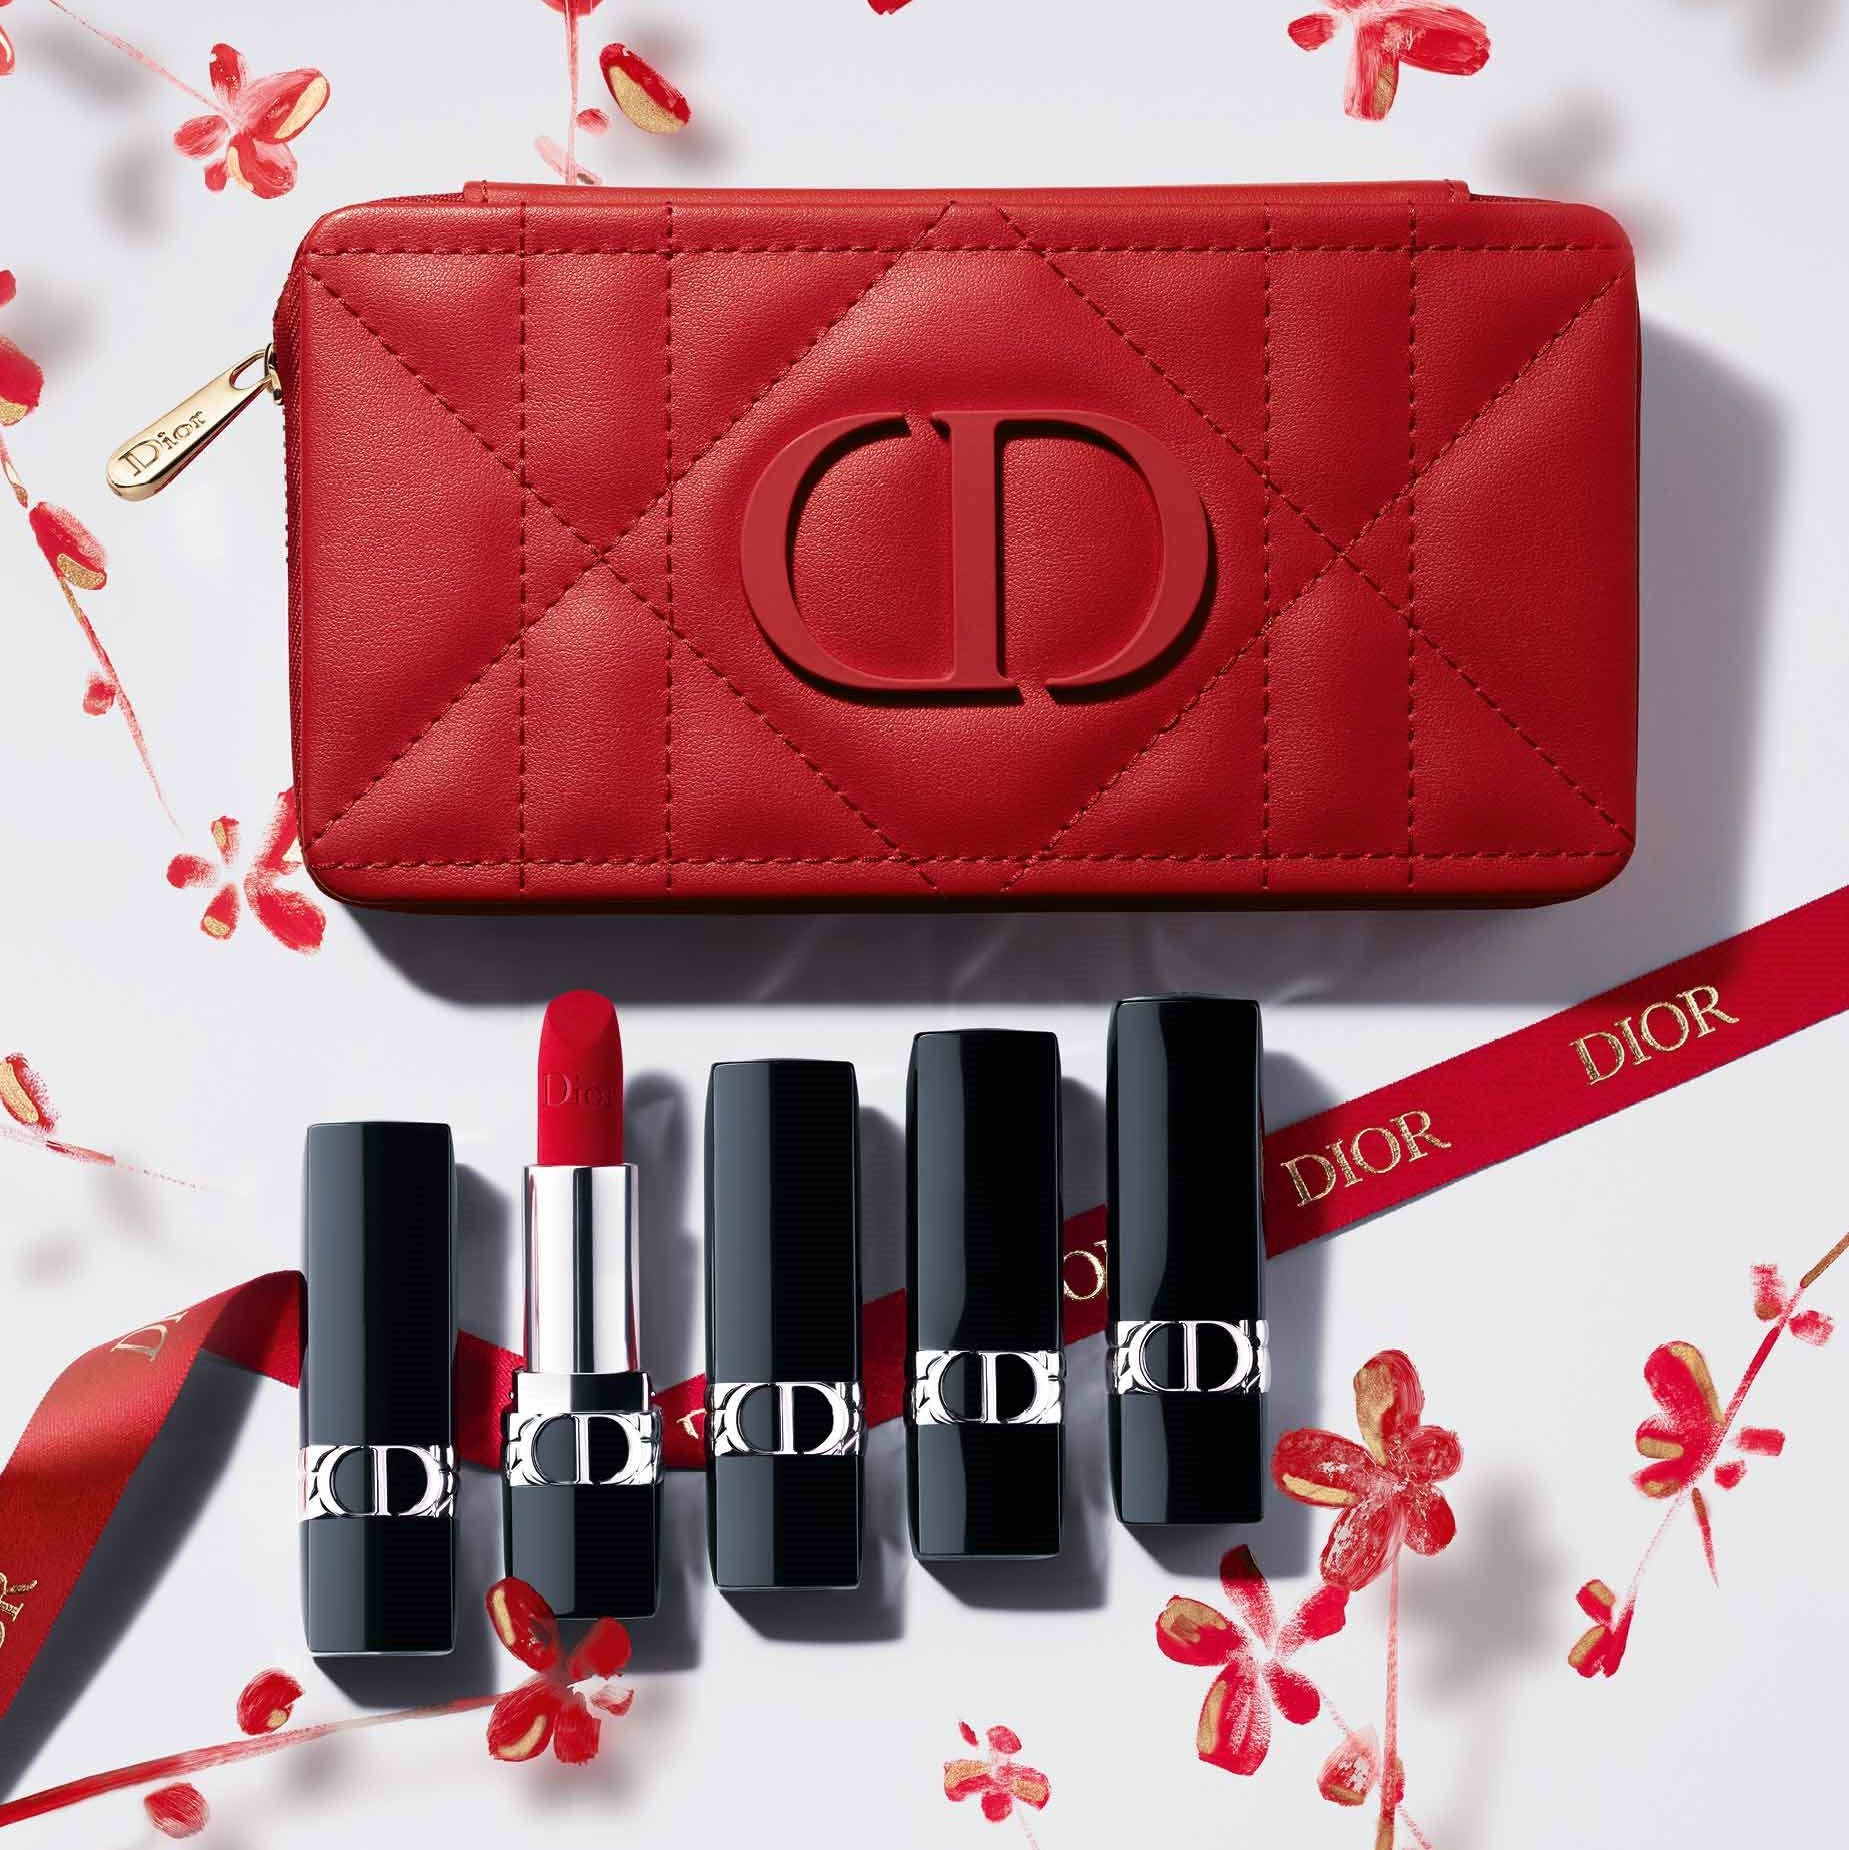 ROUGE DIOR | Refillable Lipstick Collection - Couture Color & Floral Lip Care - Long Wear